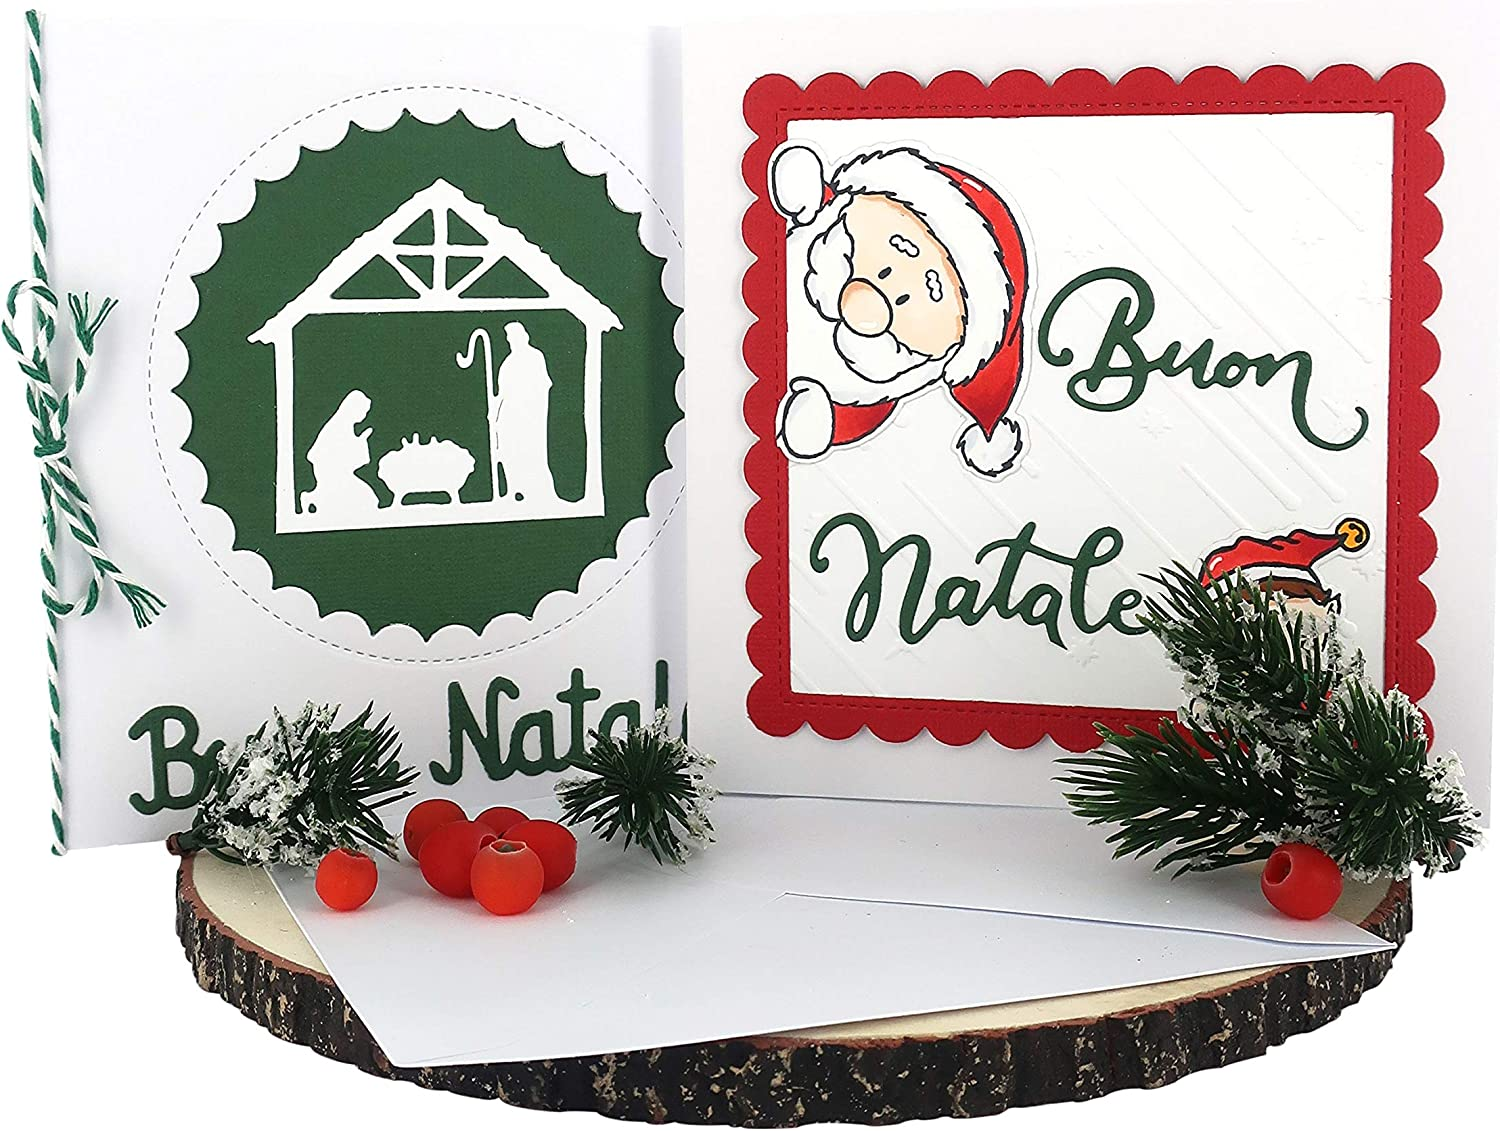 Buon Natale Ferrari.Amazon Com Ferrari Arrighetti Handmade Christmas Greeting Cards Made Of Card Stock With Envelope Buon Natale 2 Cards Furniture Decor